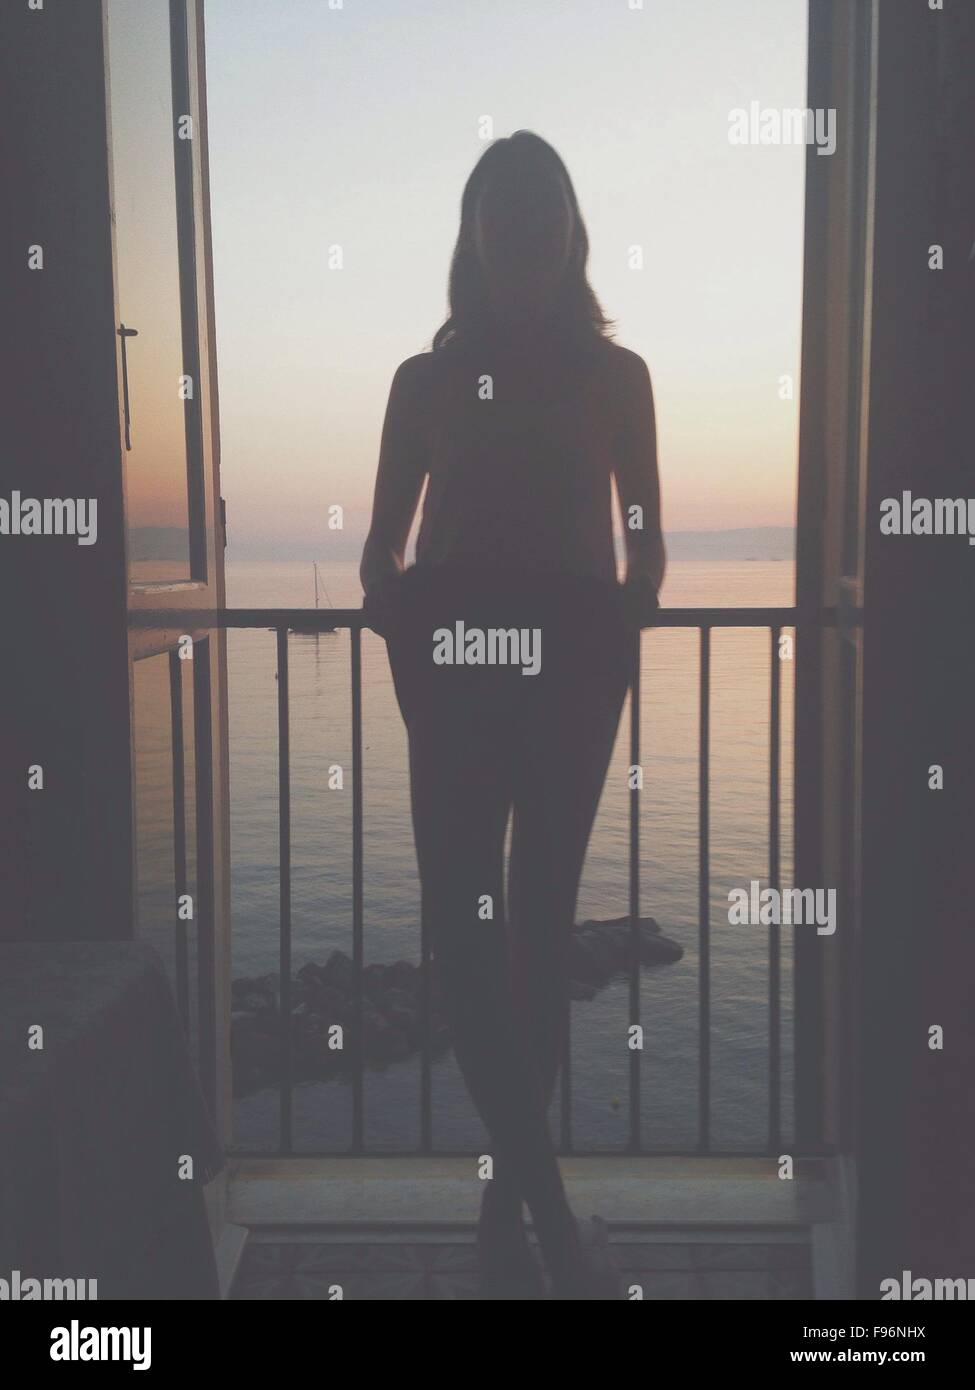 Silhouette Woman Standing On Balcony Against The Sea - Stock Image